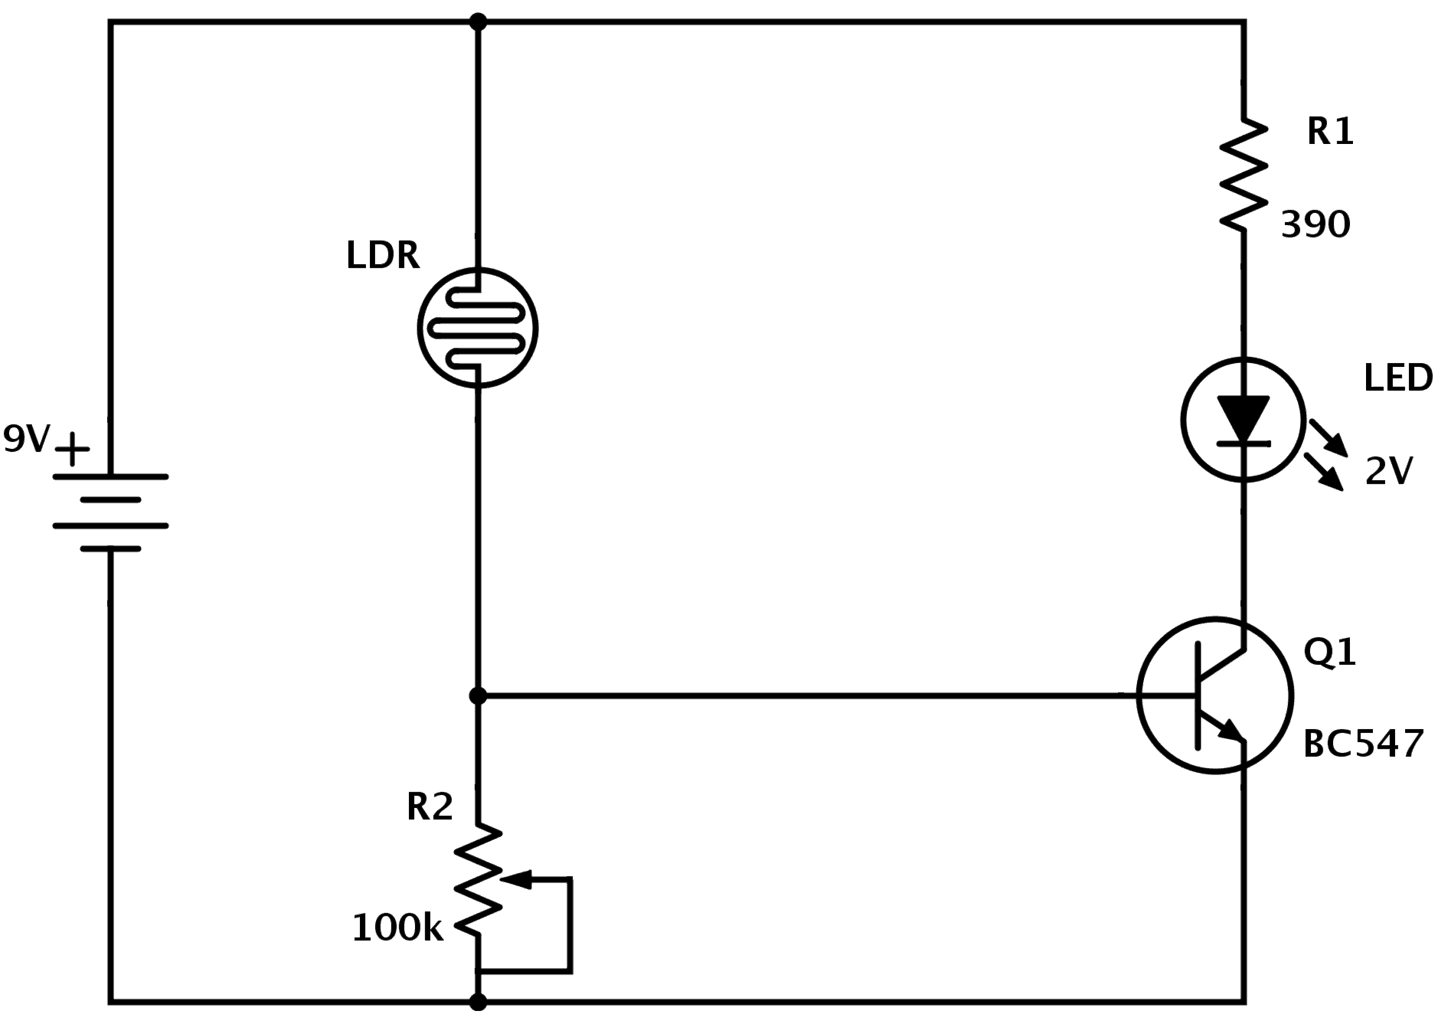 LDR circuit improved circuit diagram how to read and understand any schematic circuit diagram pdf at gsmportal.co